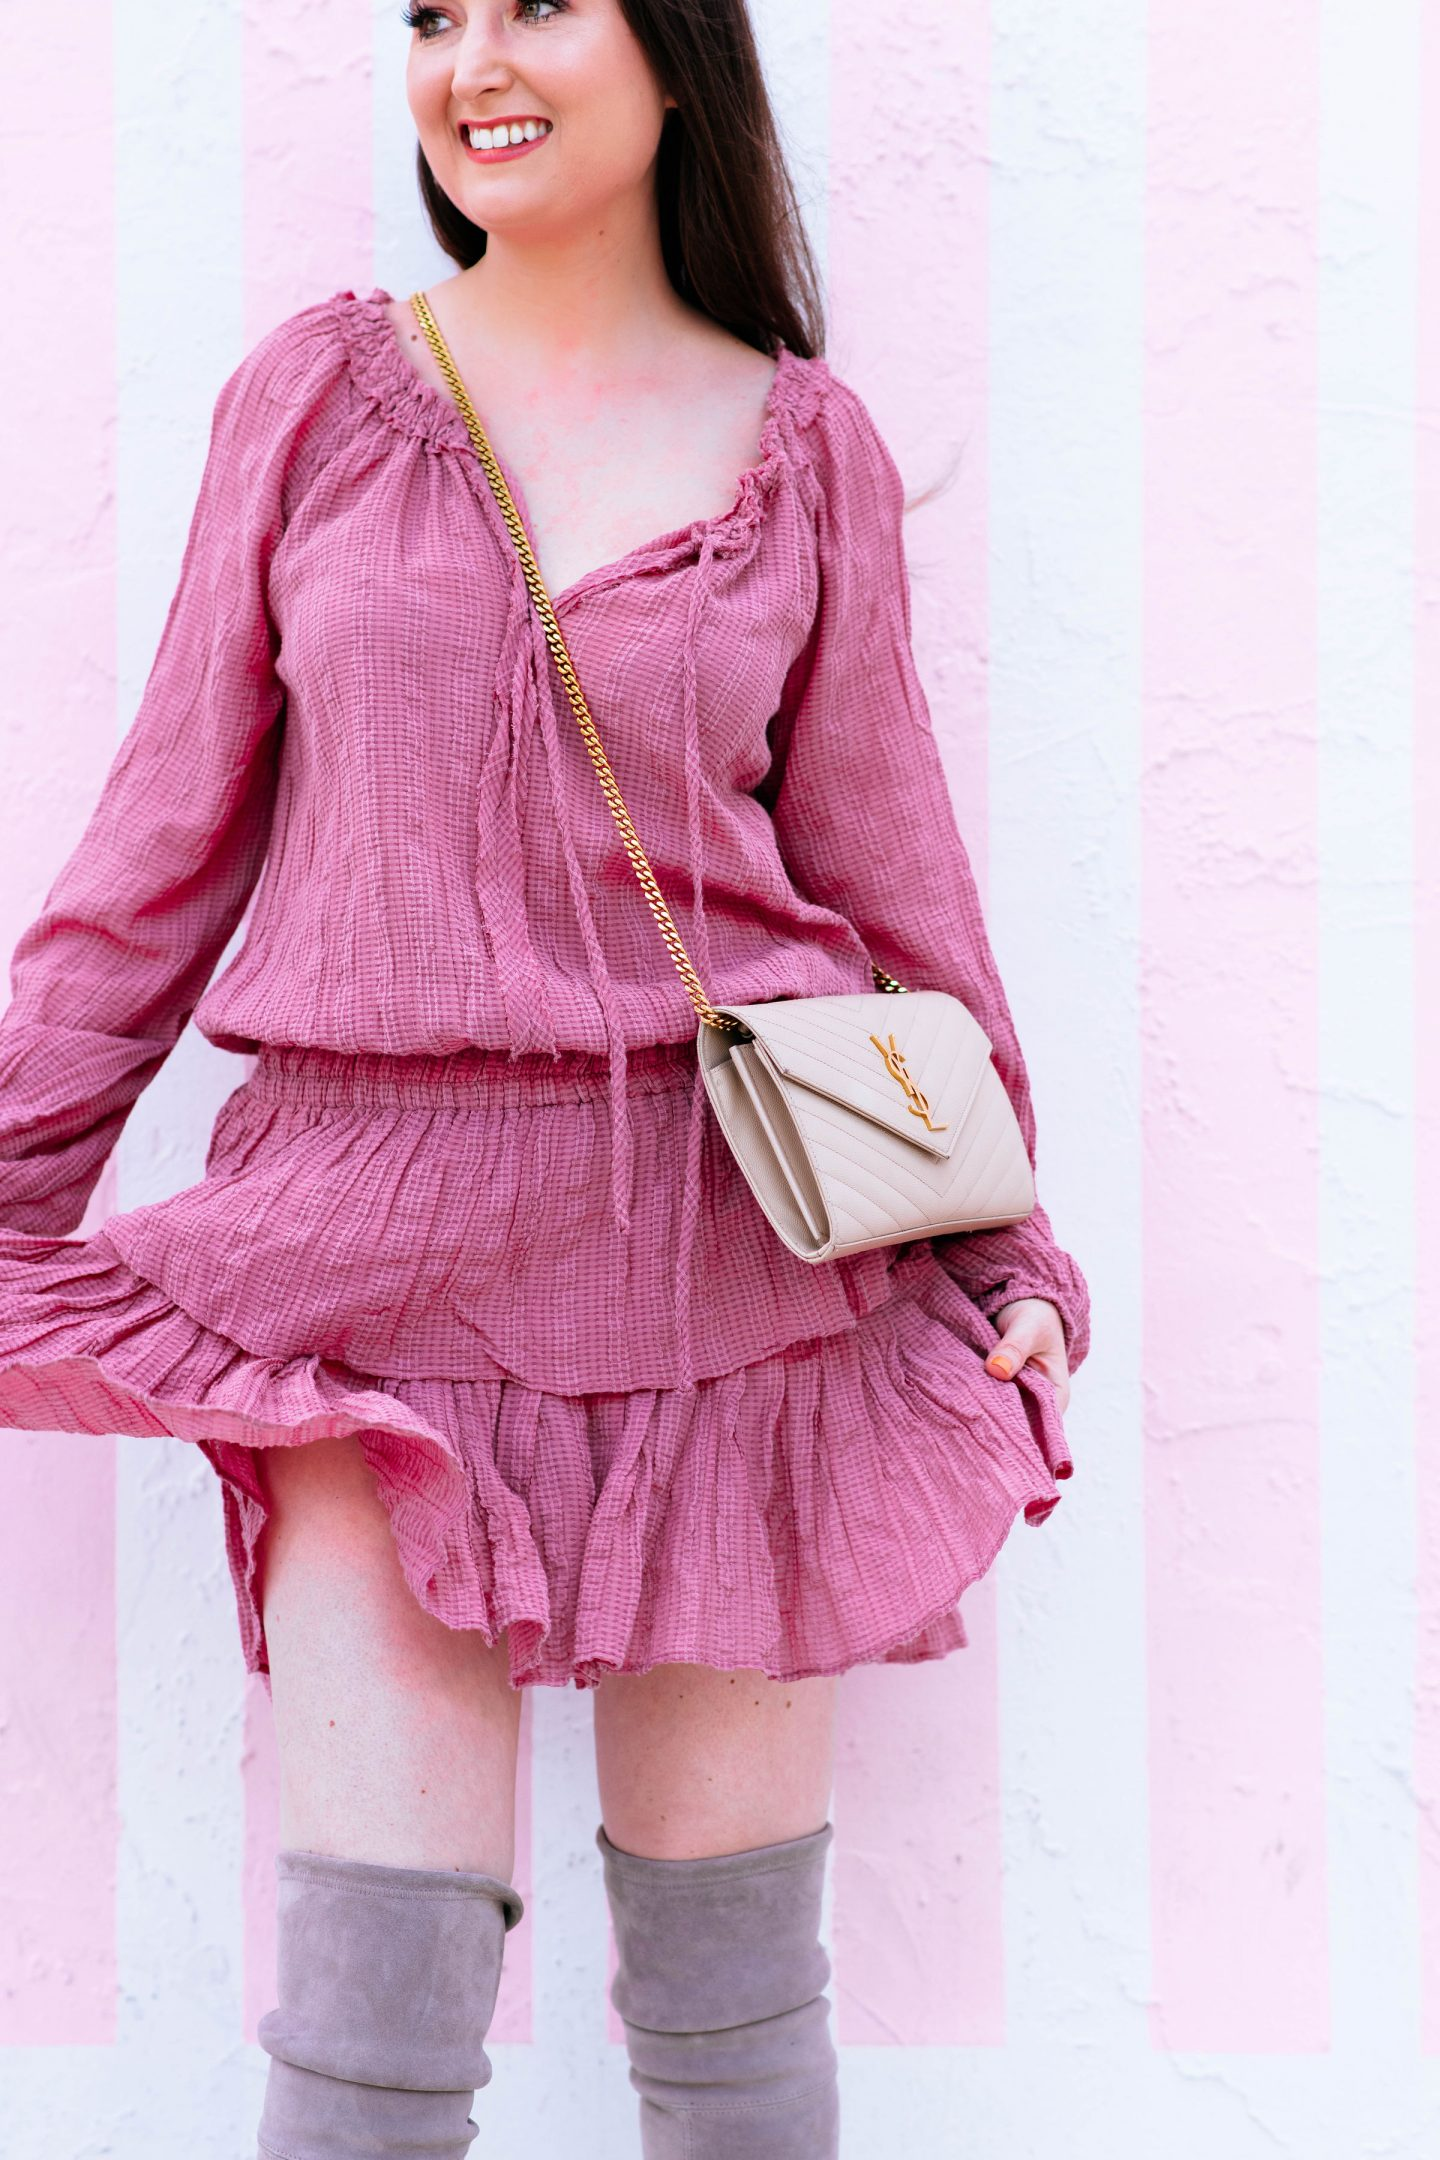 10 Easy To Copy Outfits That Will Make You Look Expensive, look expensive, loveshackfancy popover dress, pink dress